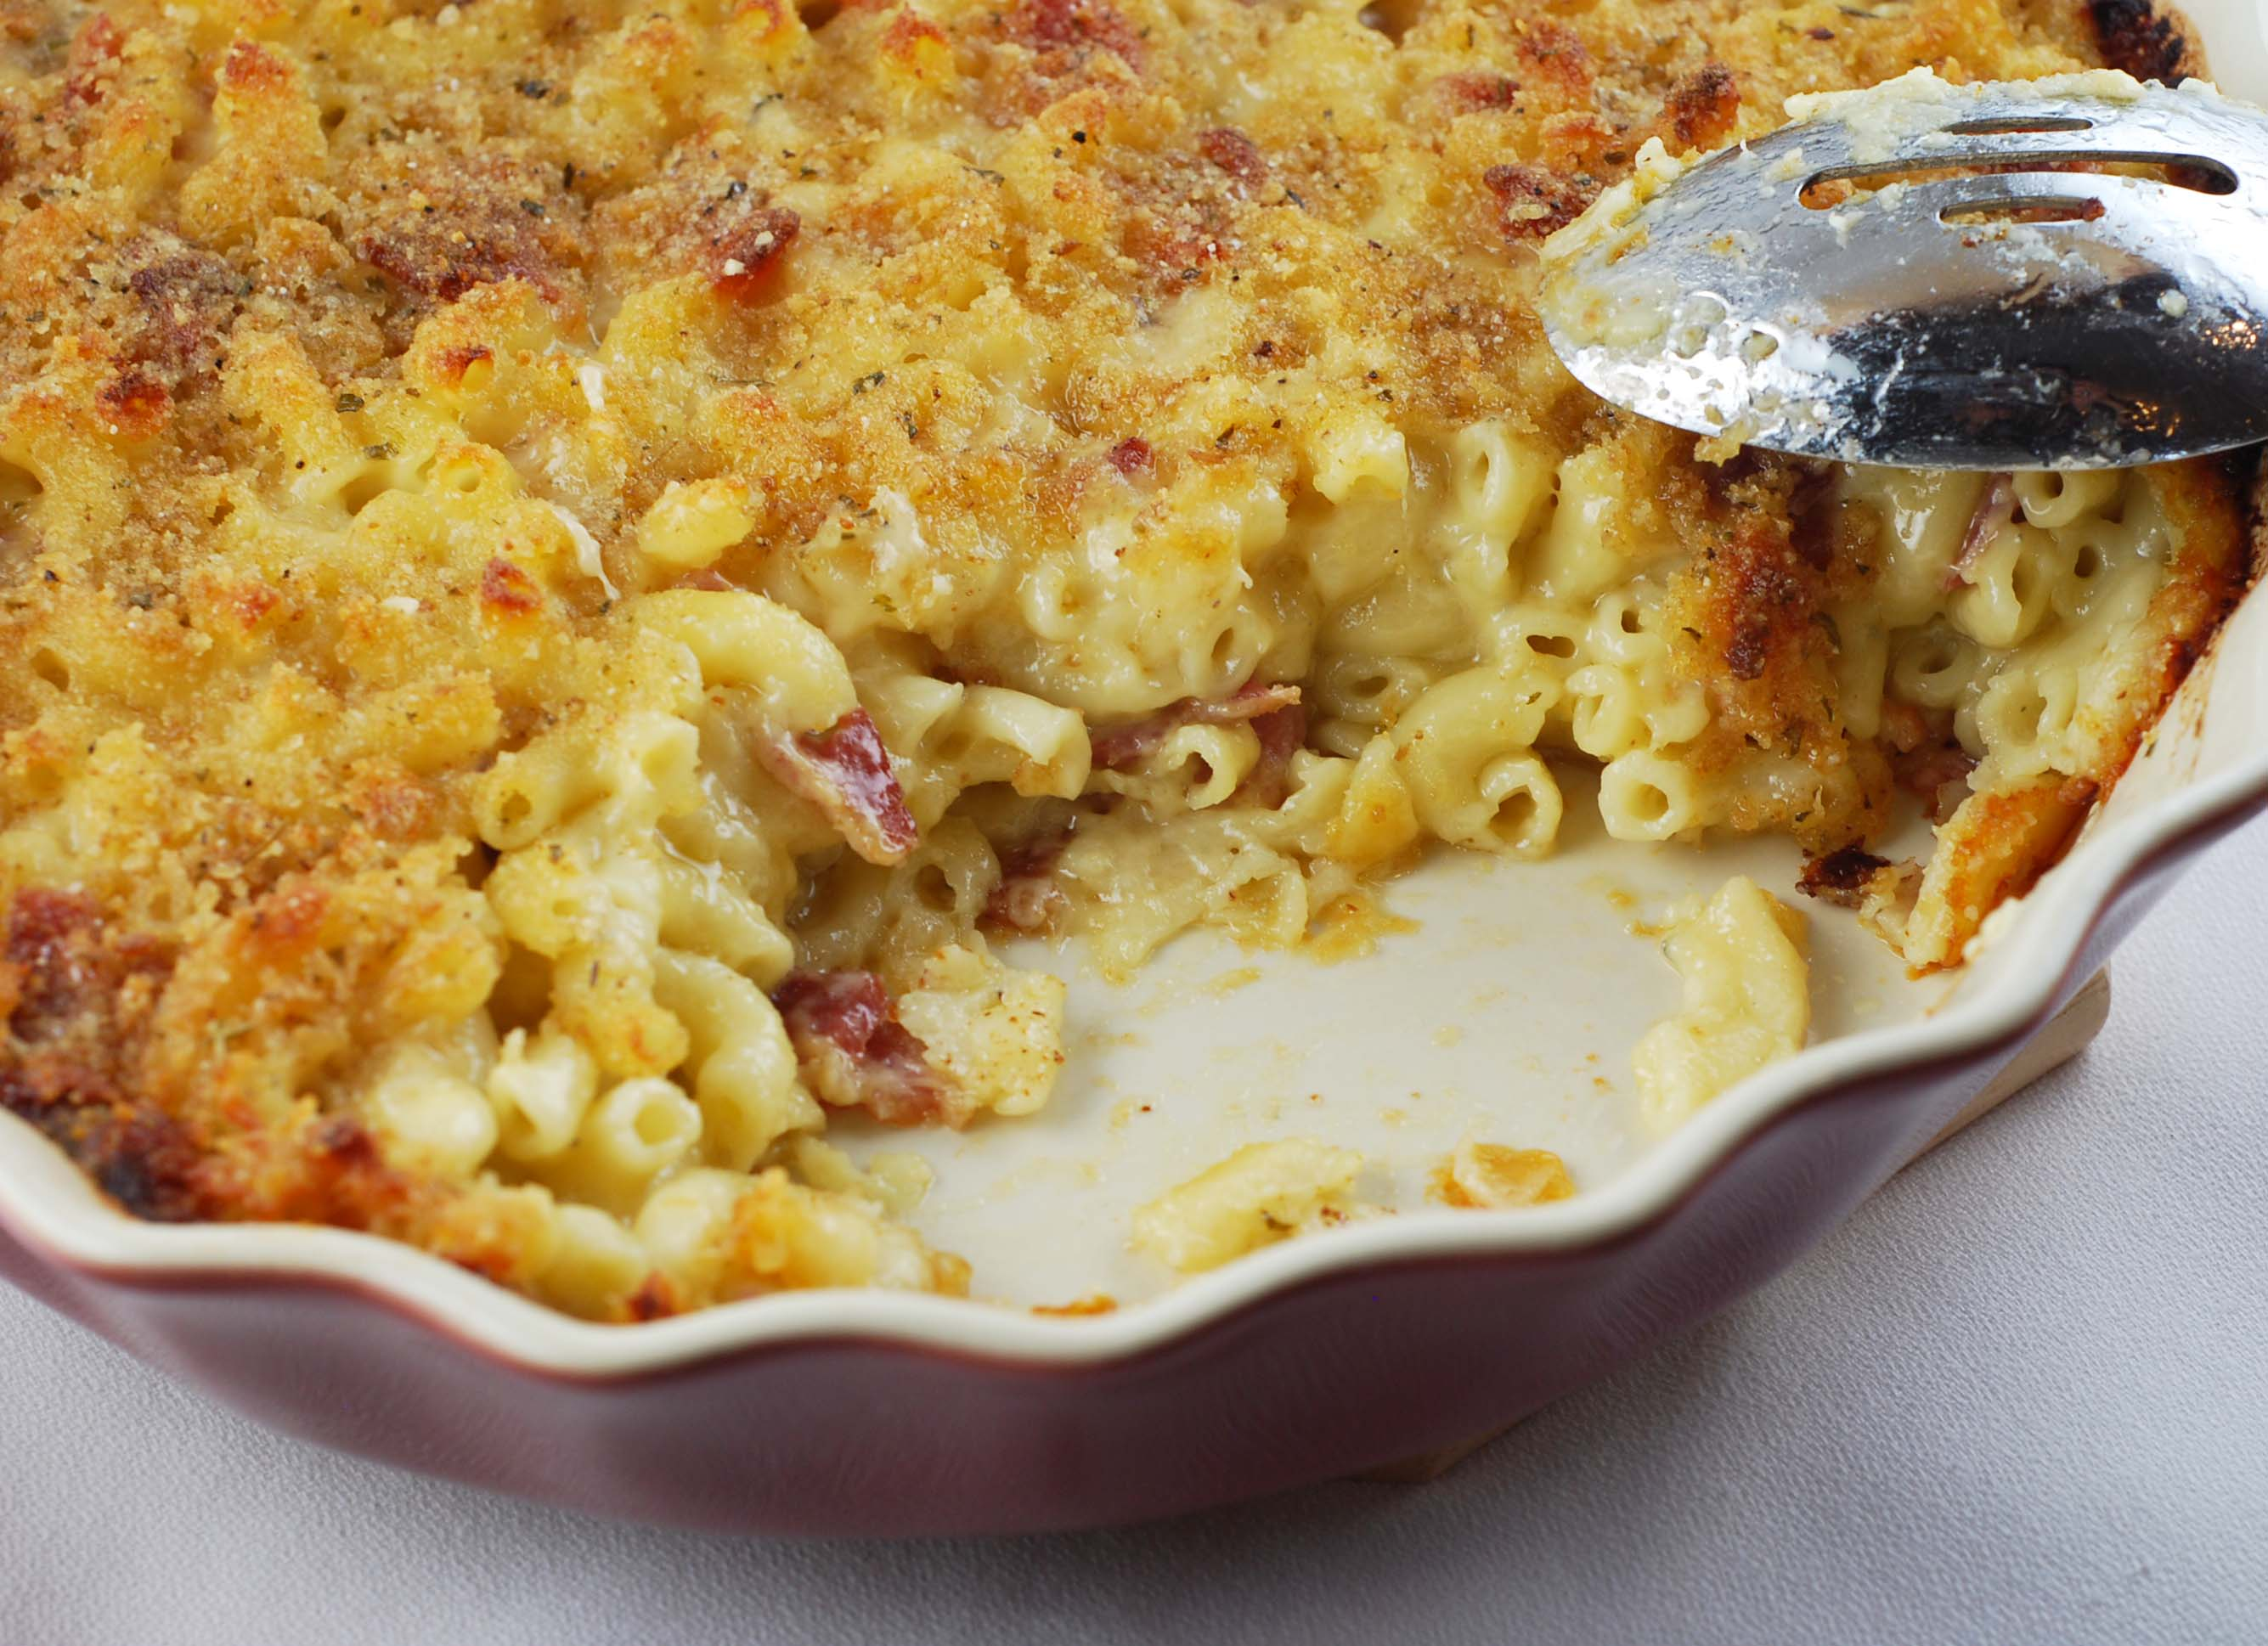 Ina Garten Grown Up Mac And Cheese Barefoot Contessa Grown Up Mac And Cheese Beauteous Grown